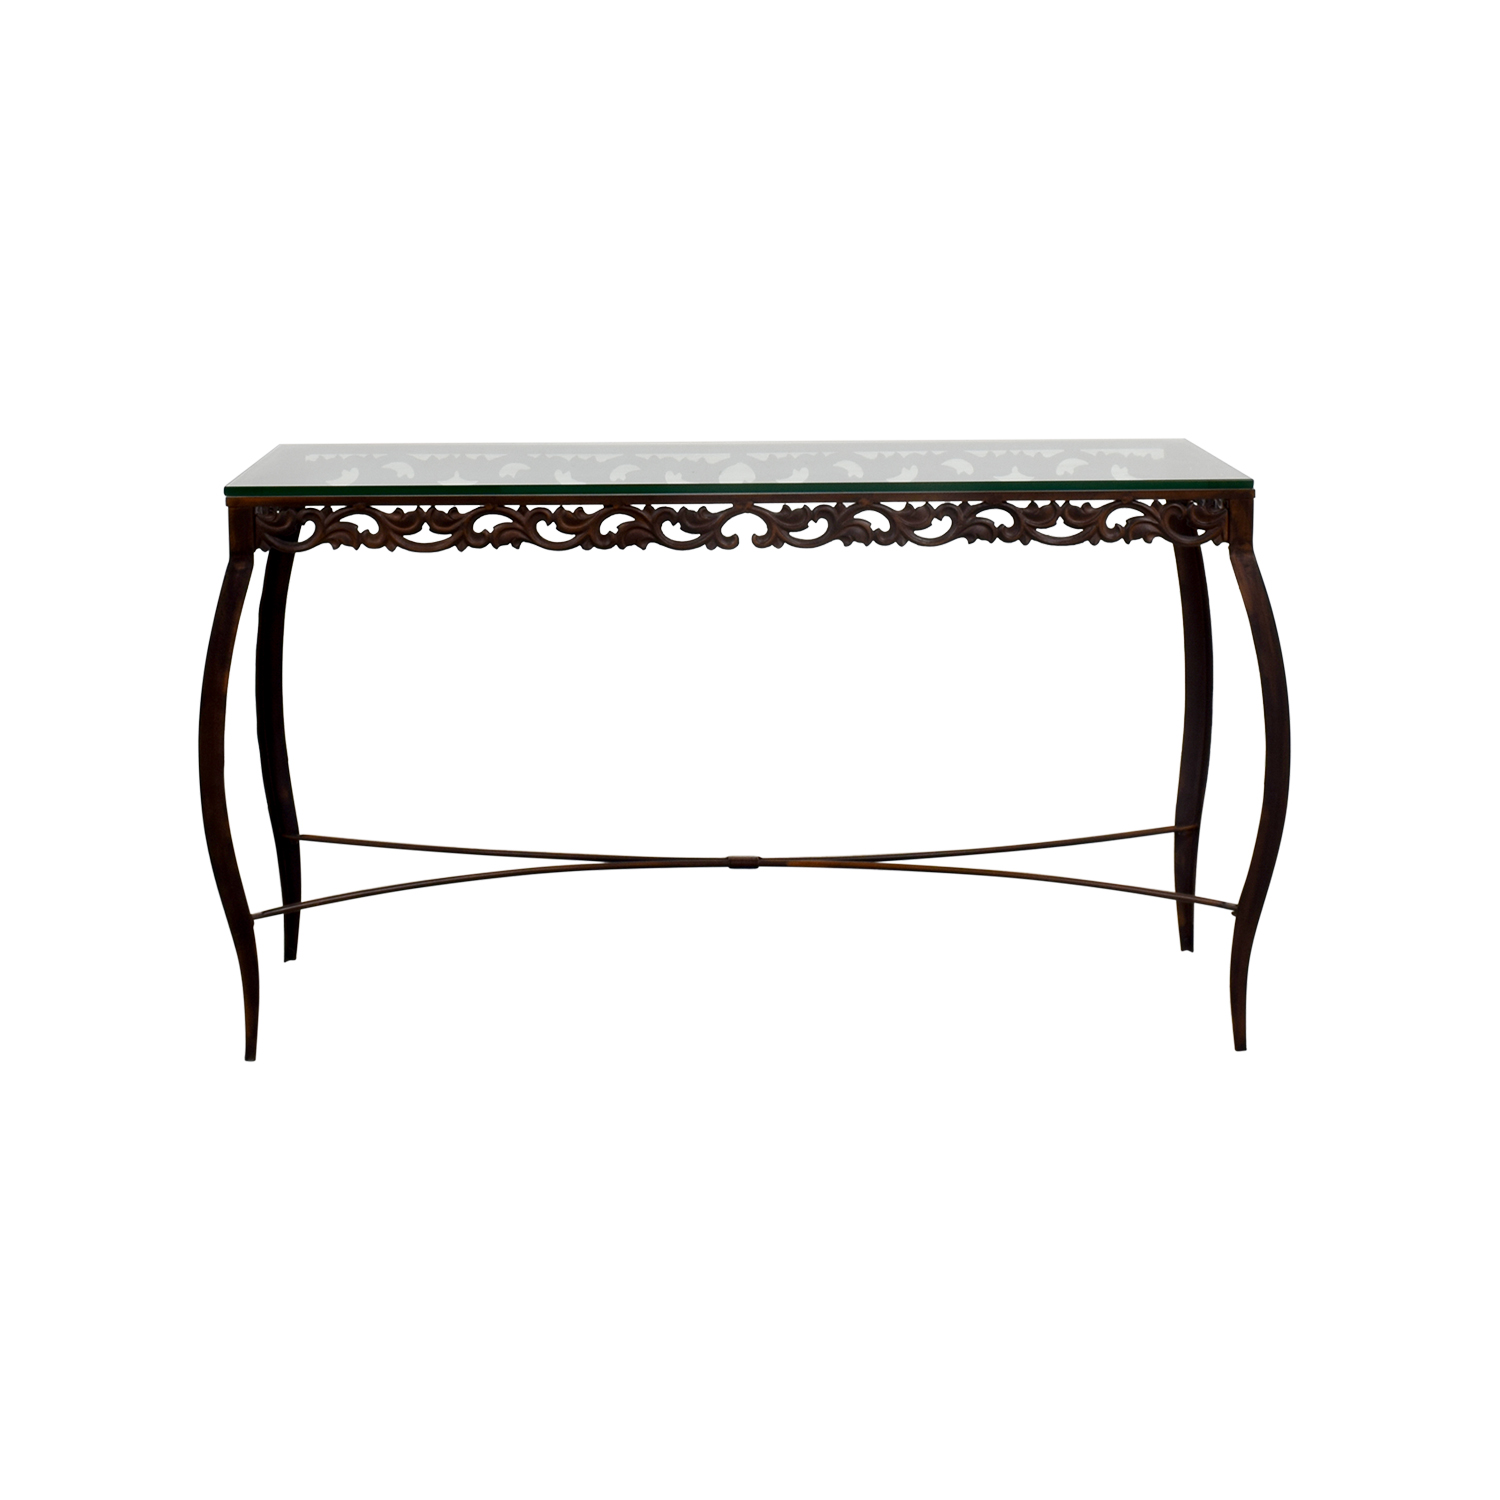 90 Off Pier 1 Pier 1 Imports Glass Console Table Tables